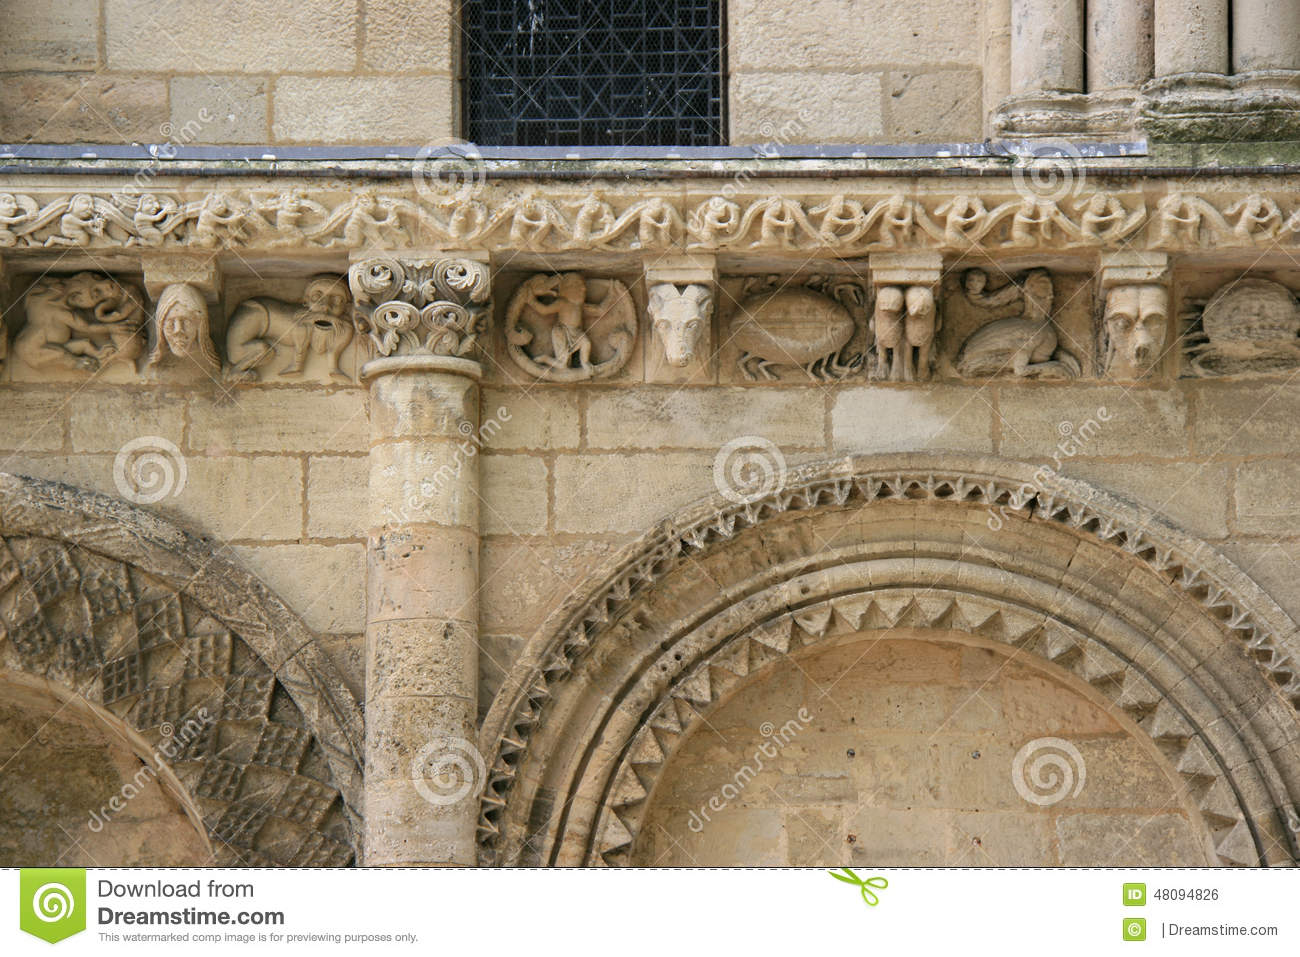 Sculptured animals and fantastic characters decorate the facade of a church (France)